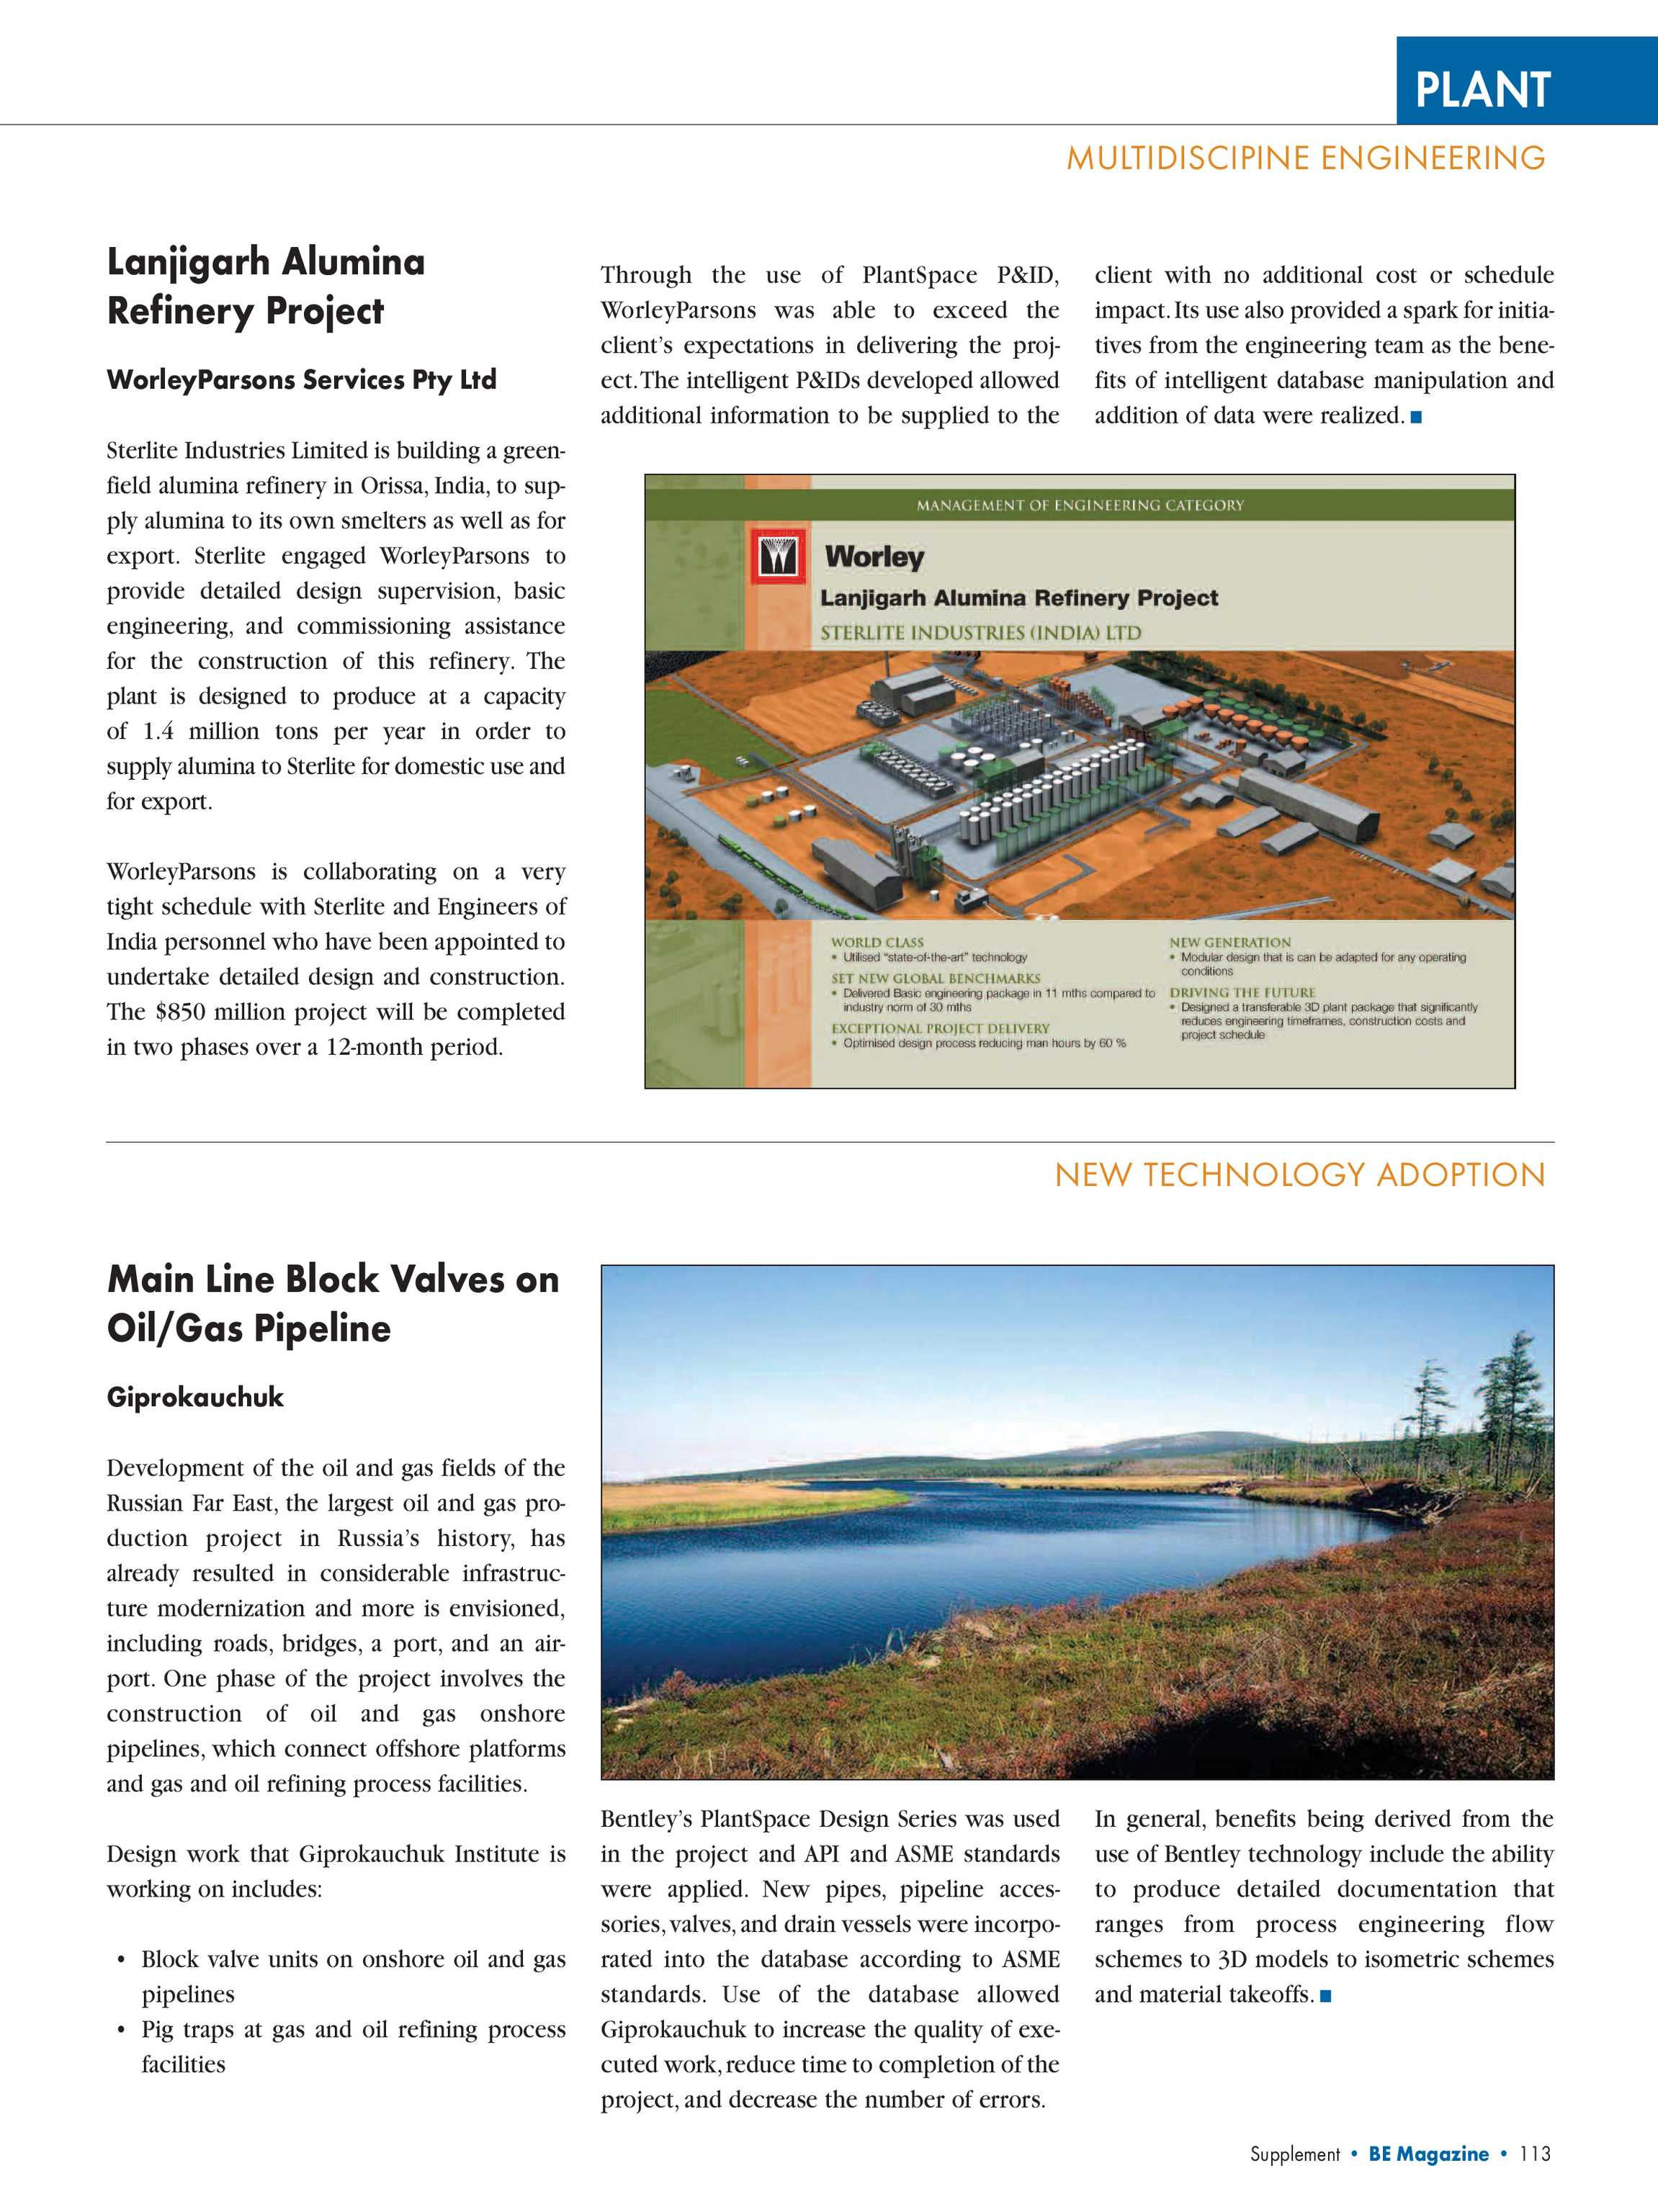 Year In Infrastructure 2005 - page 113